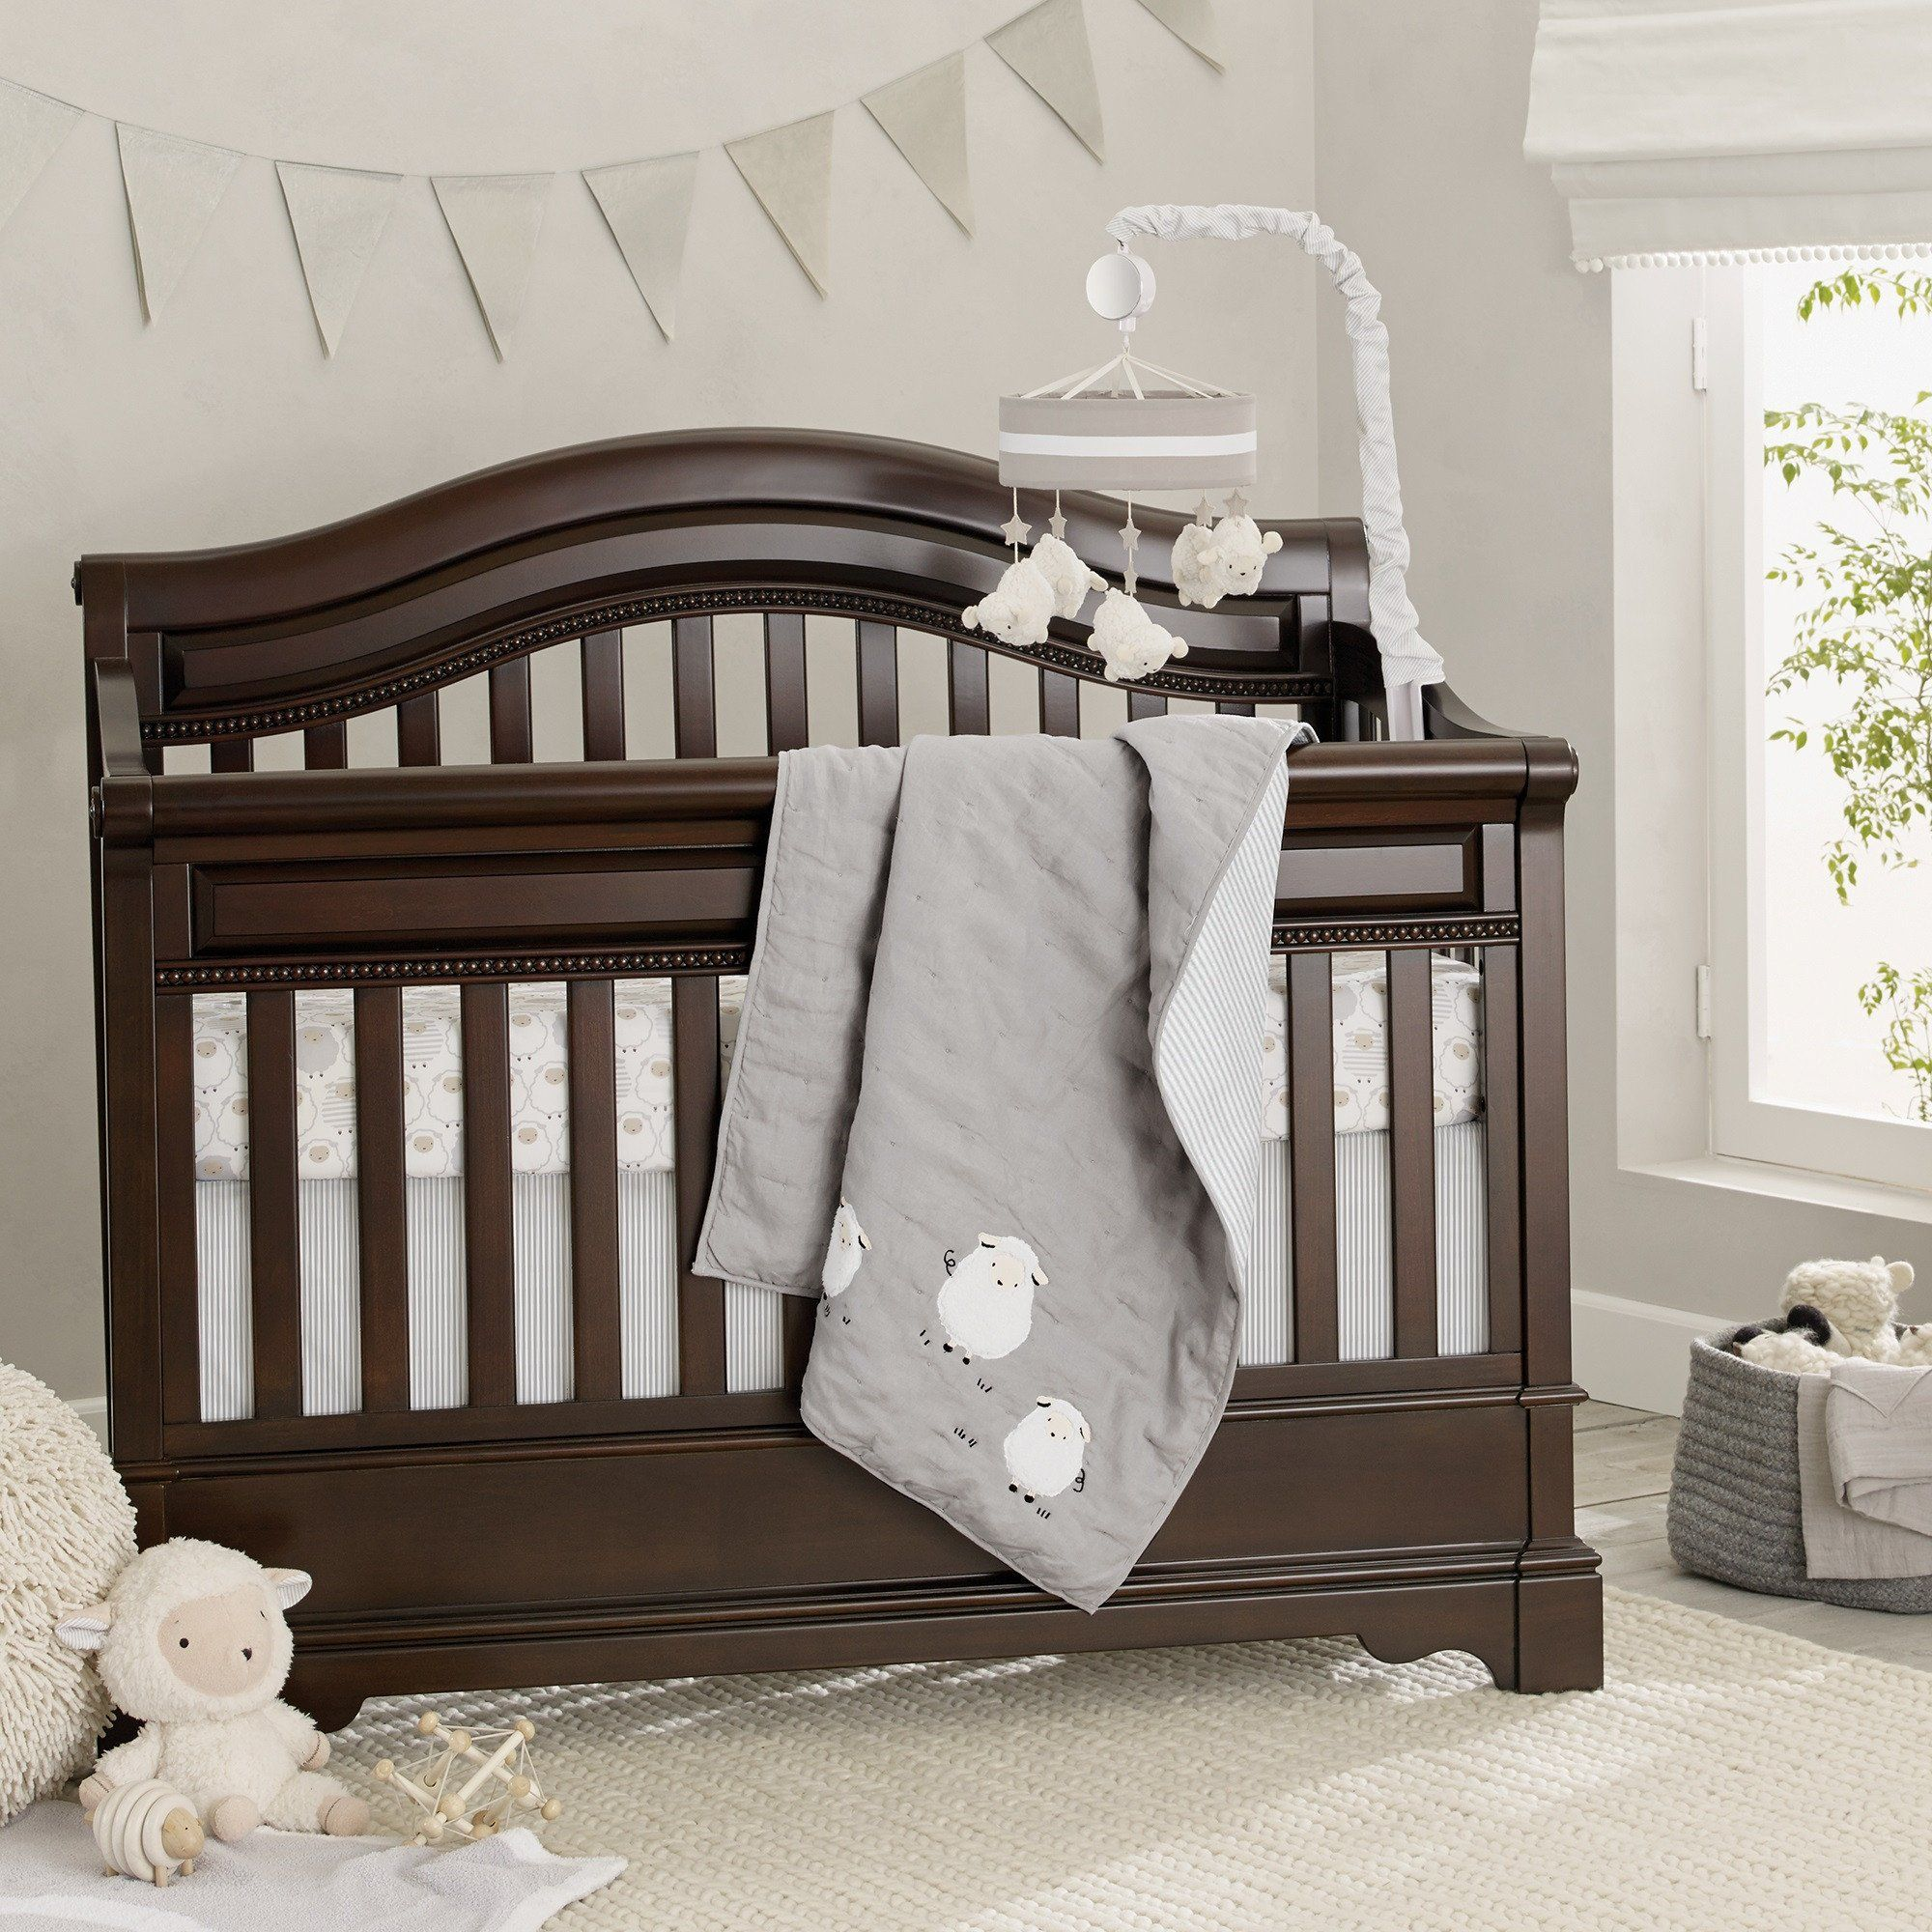 Signature Goodnight Sheep 4 Piece Crib Bedding Set Lambs Ivy Baby Grey Nursery Neutral